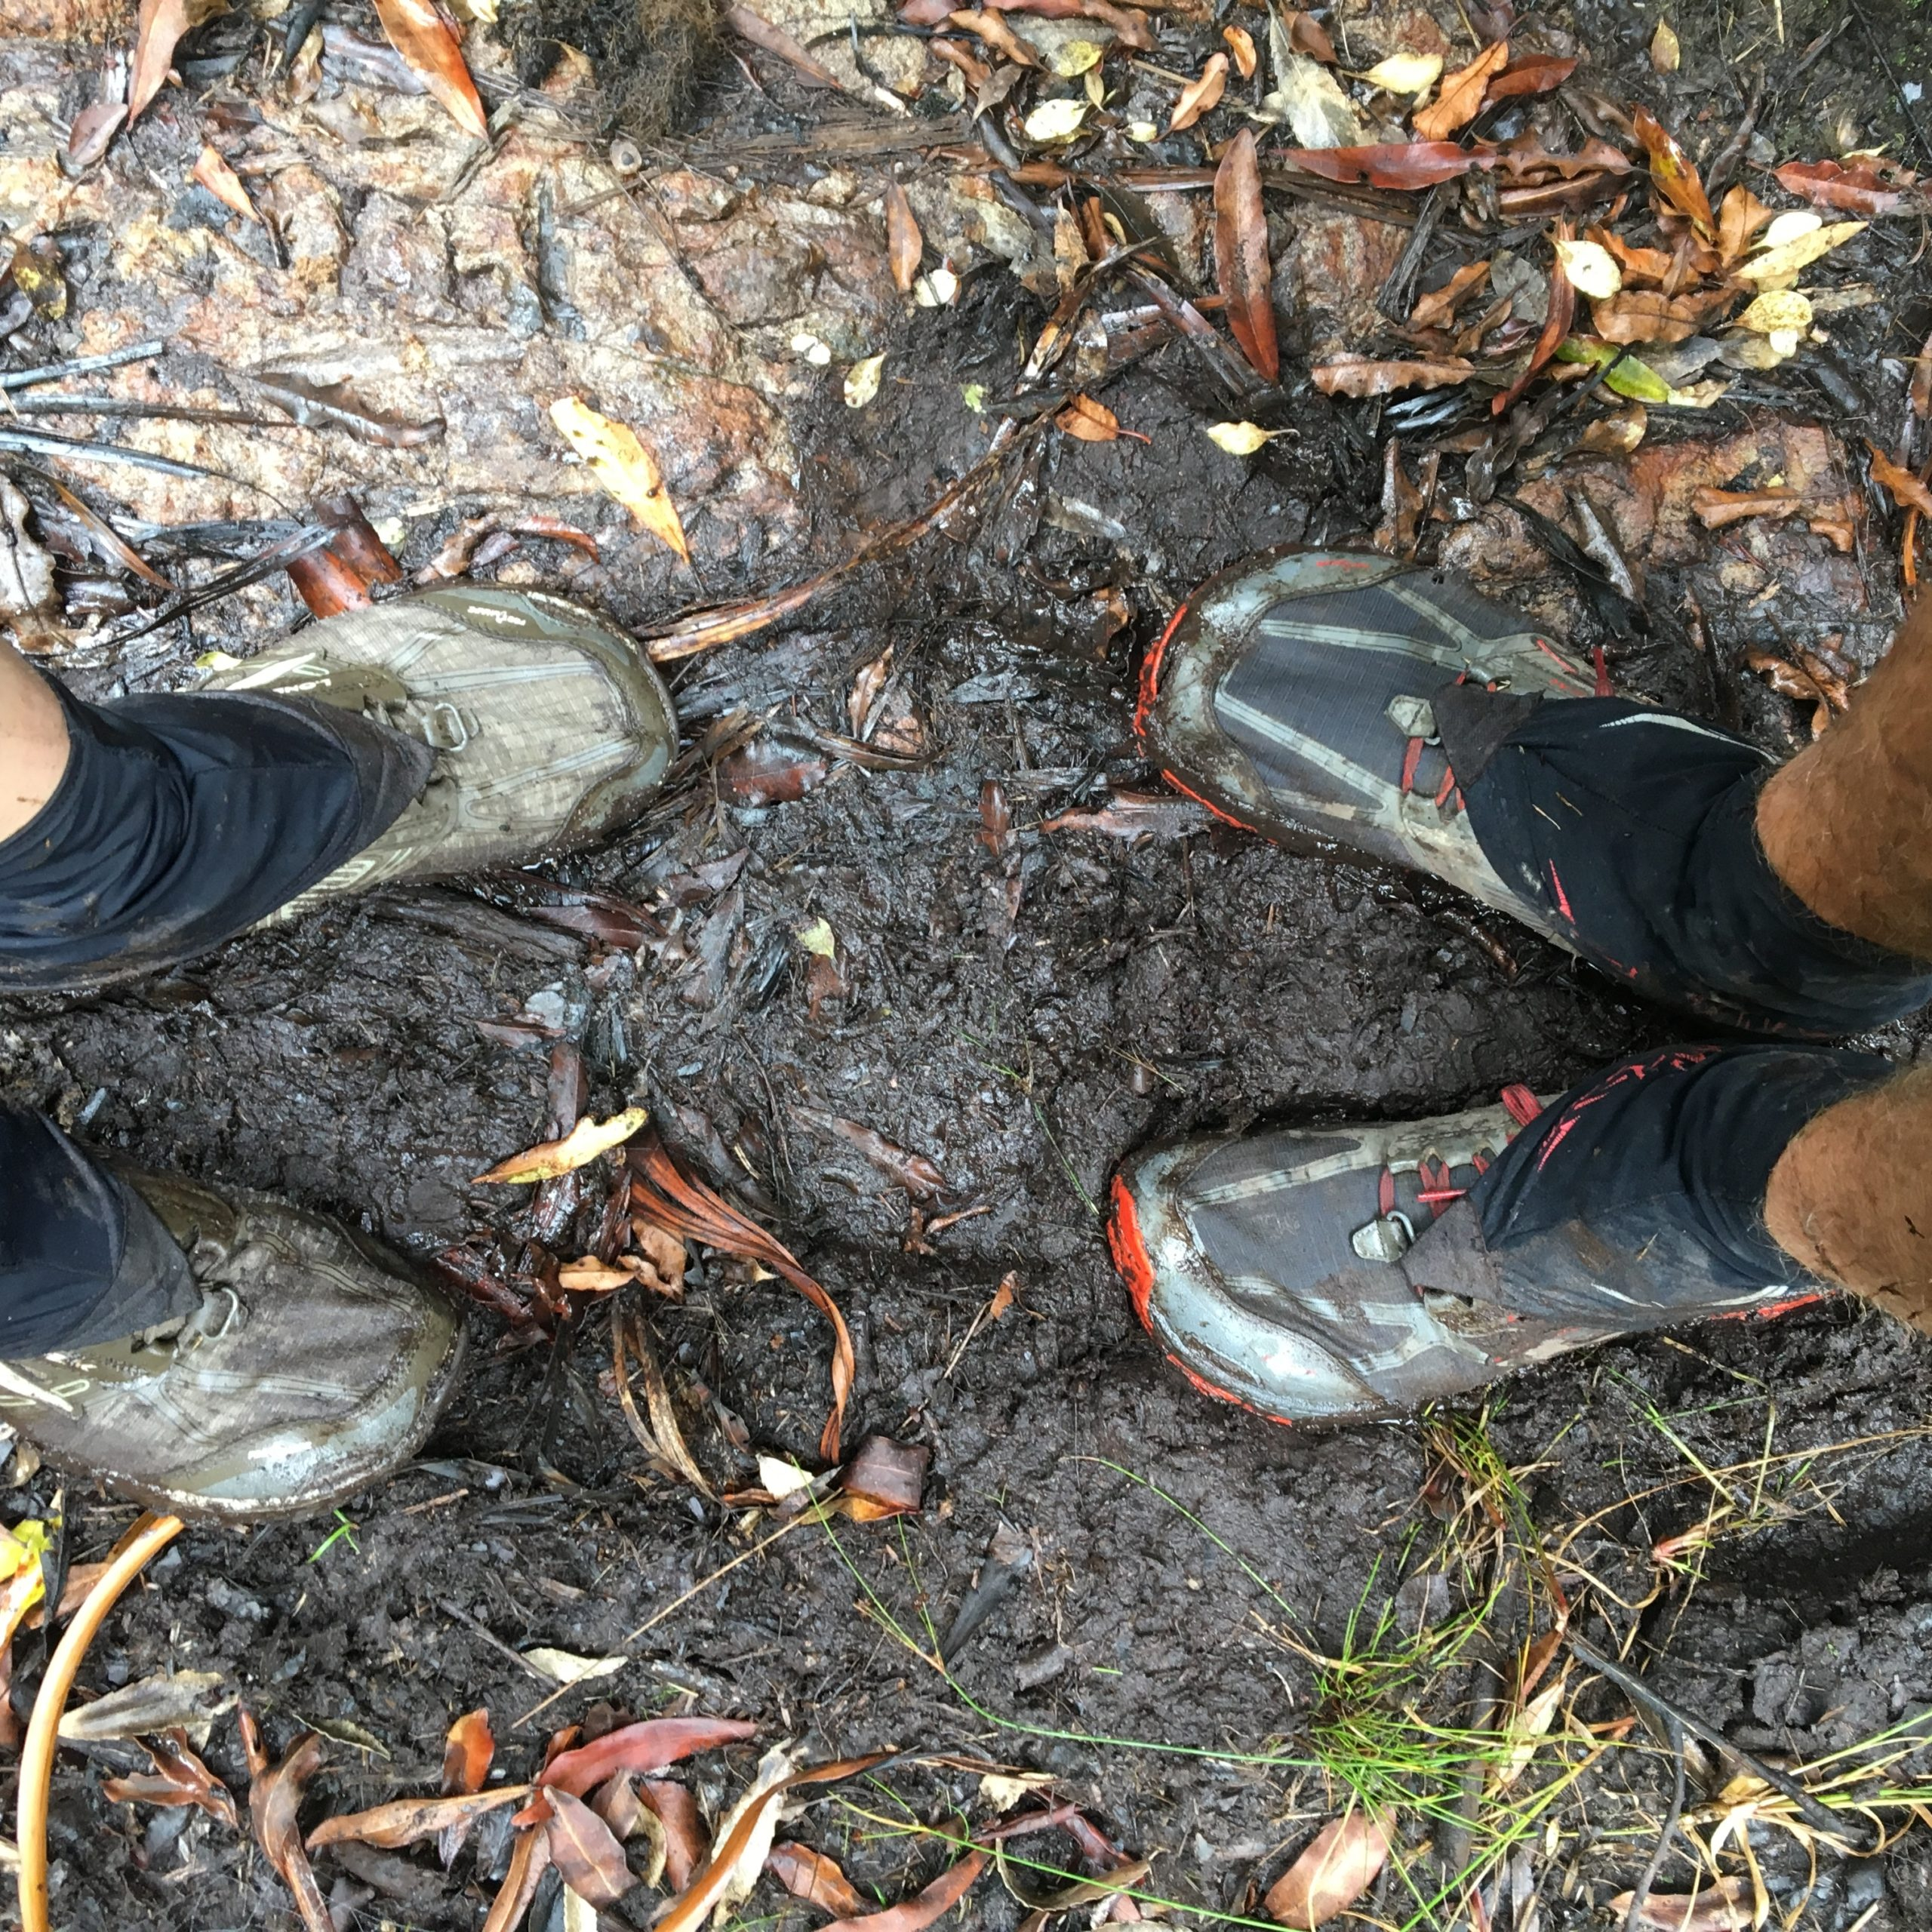 Used Hiking shoe s on a muddy trail